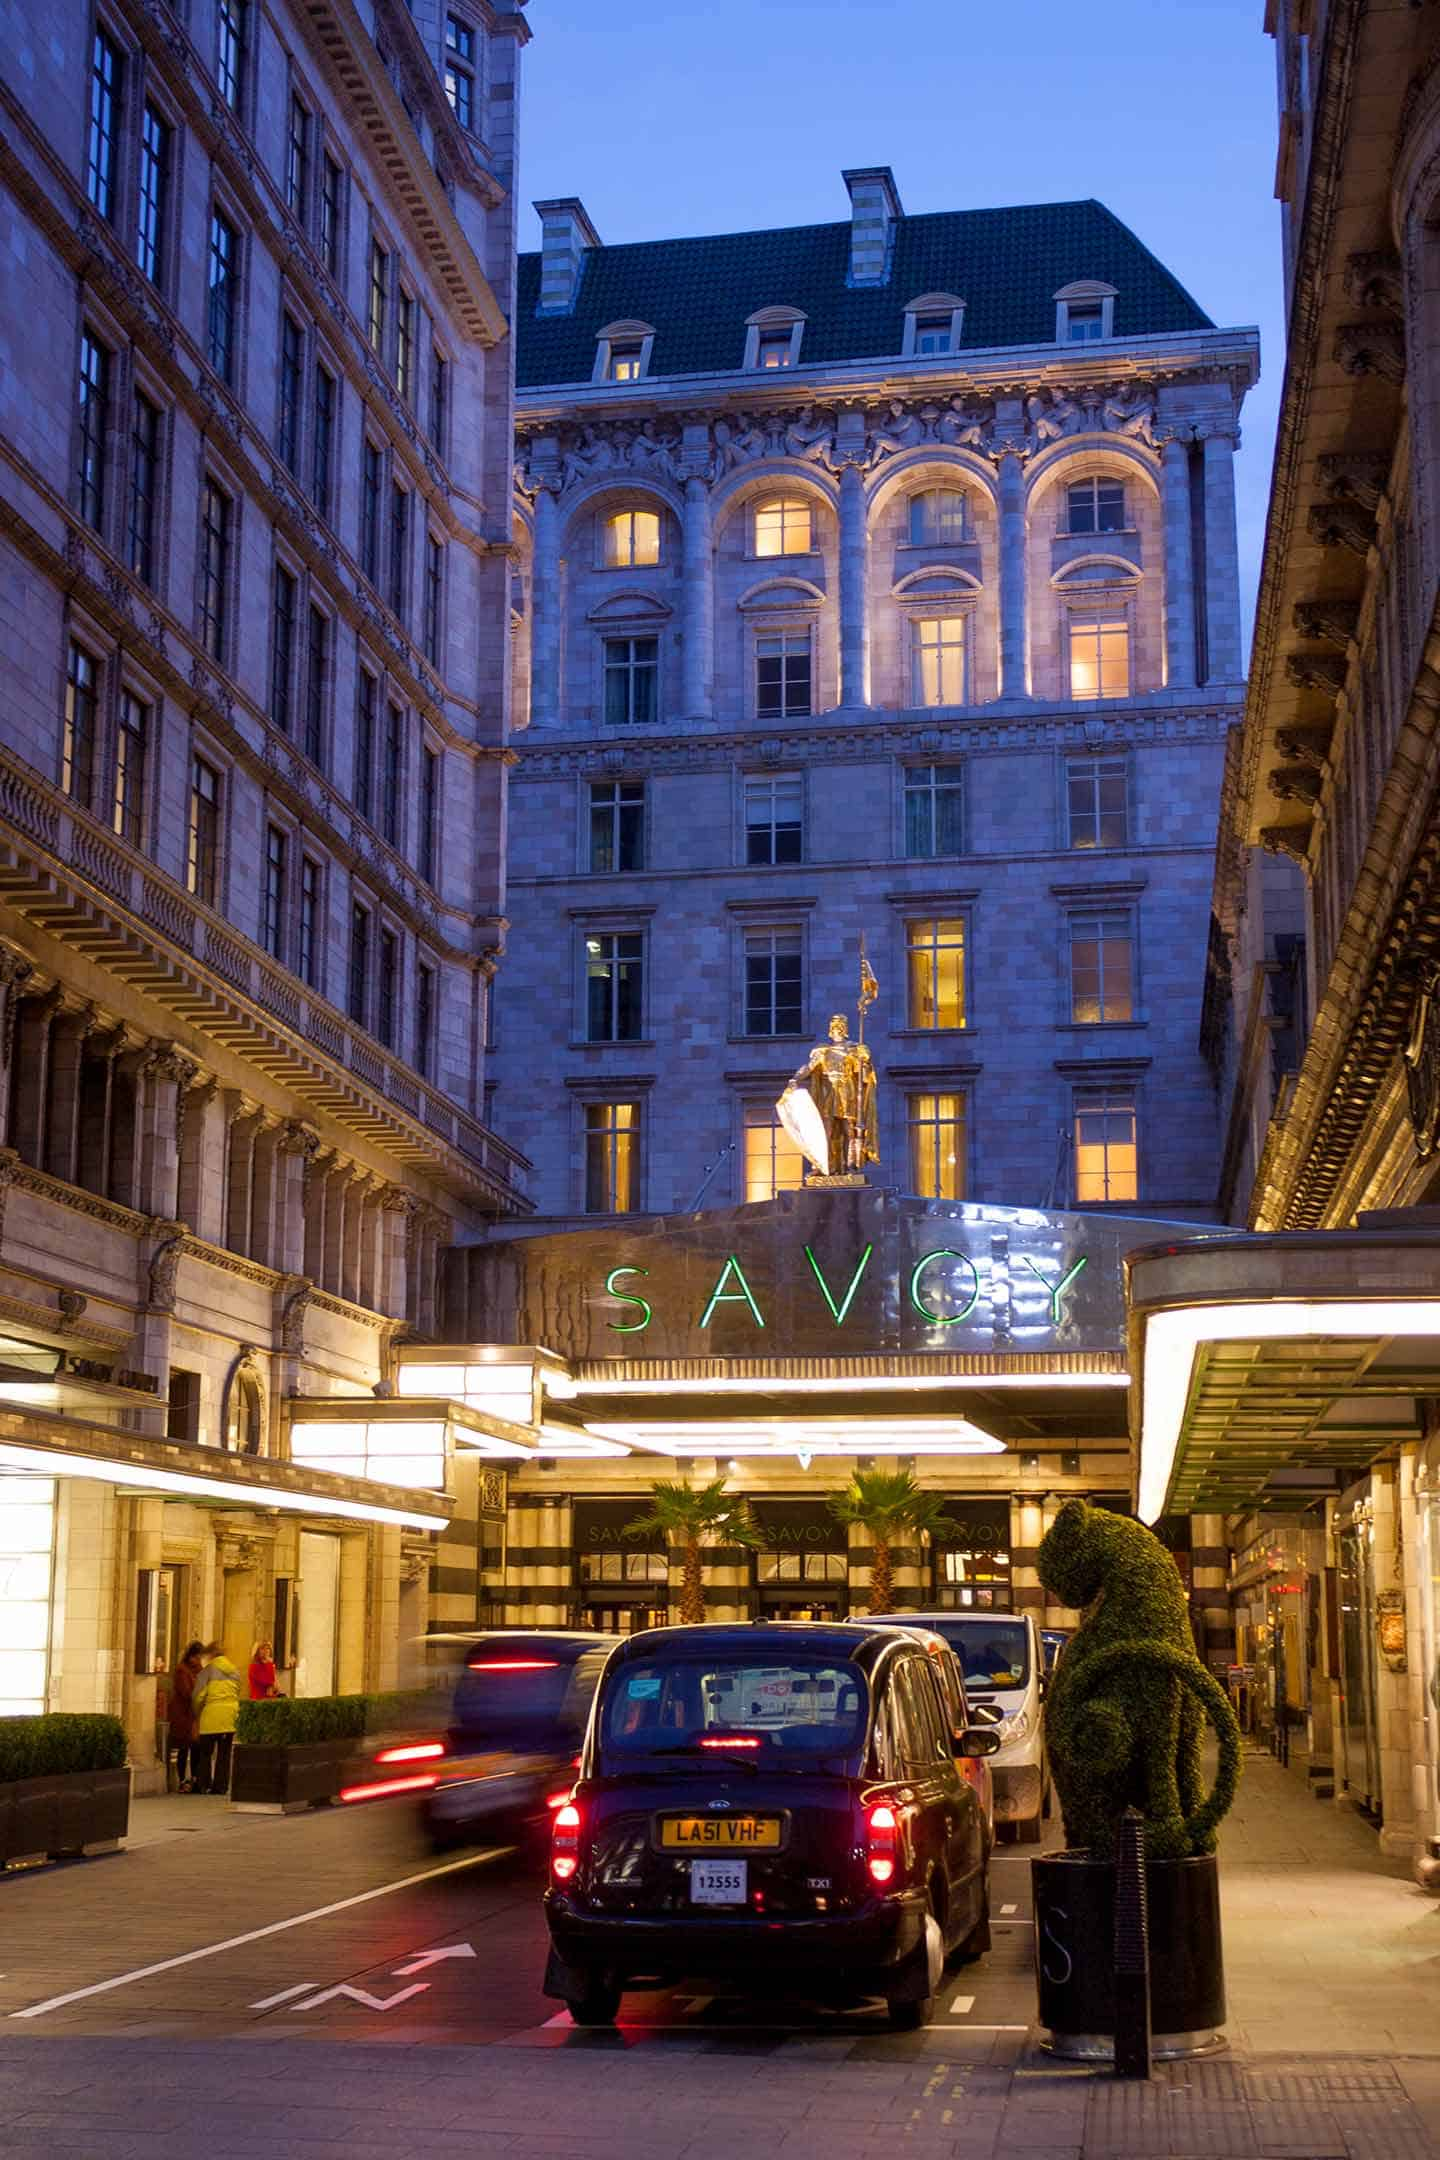 Image of the entrance to the Savoy Hotel, London